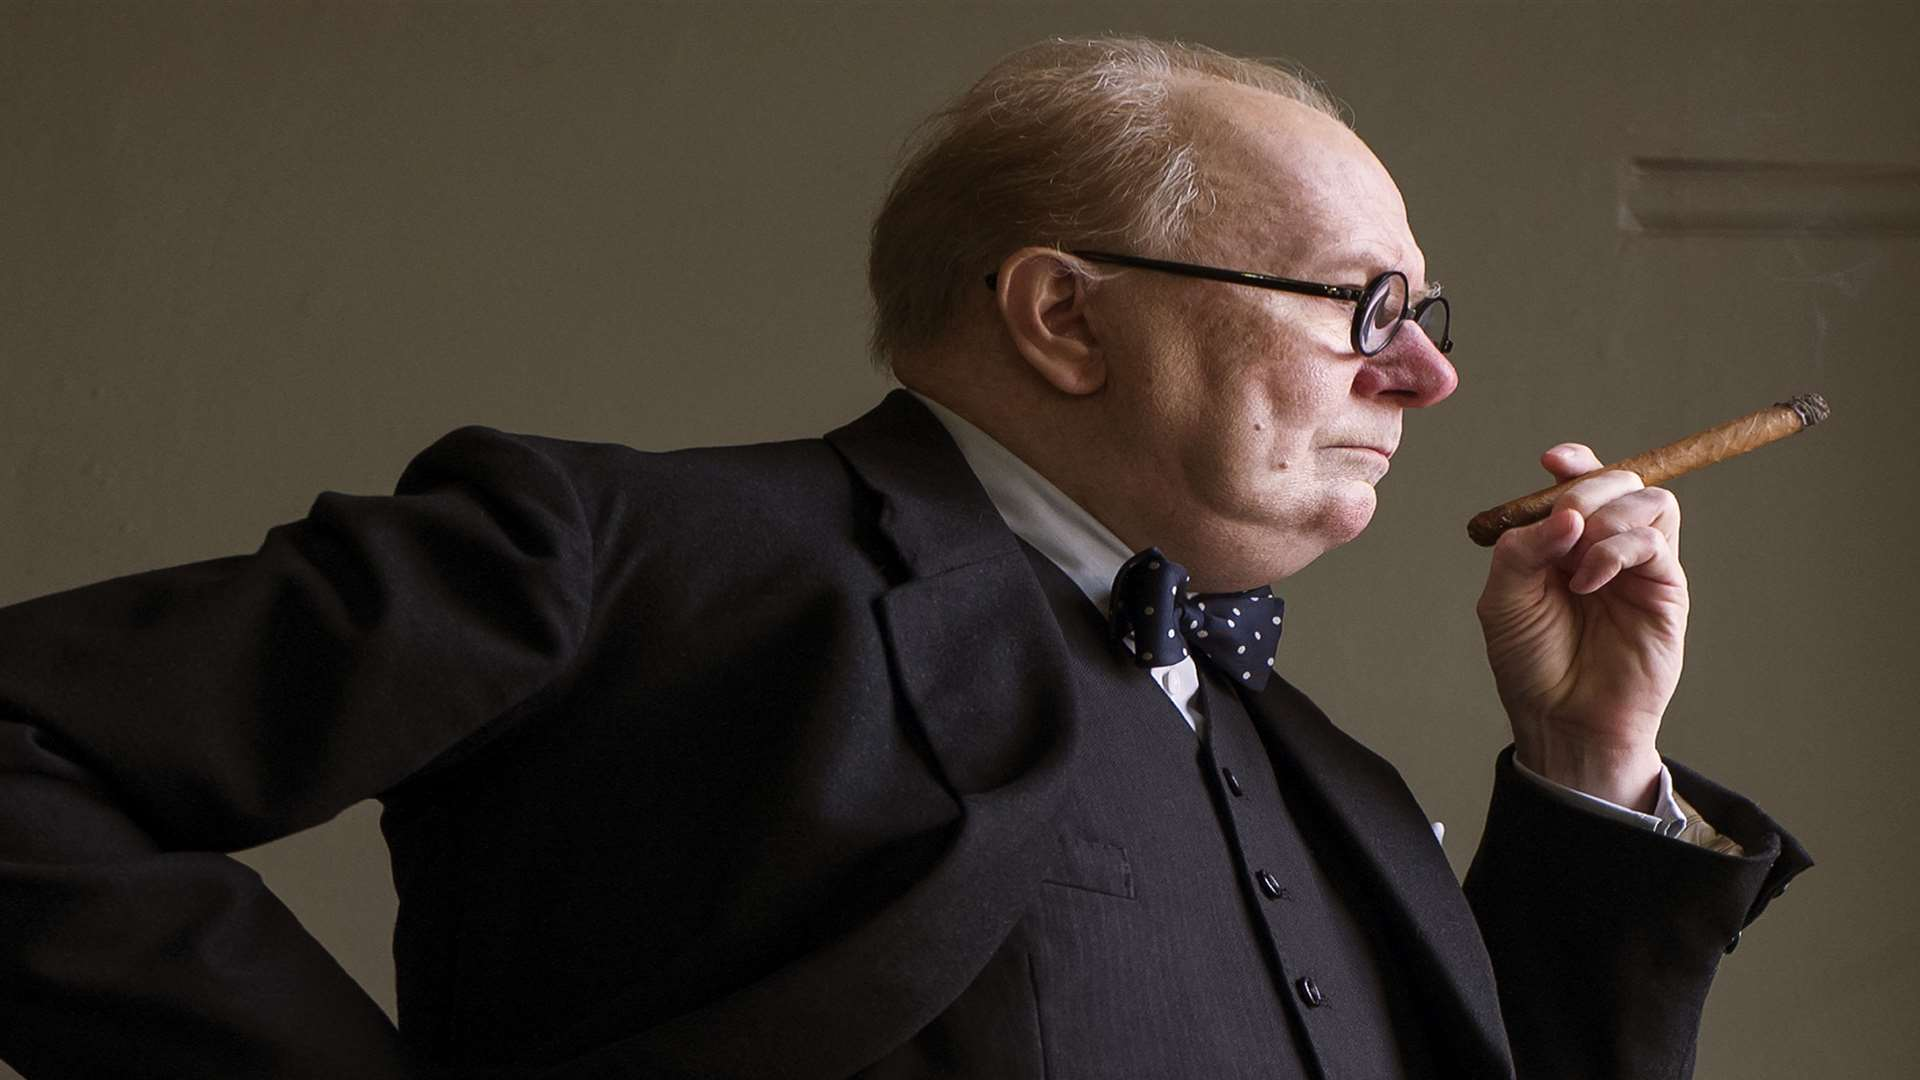 Gary Oldman as Winston Churchill in Darkest Hour Picture: PA/Universal Pictures/Focus Features LLC/ Jack Engllish